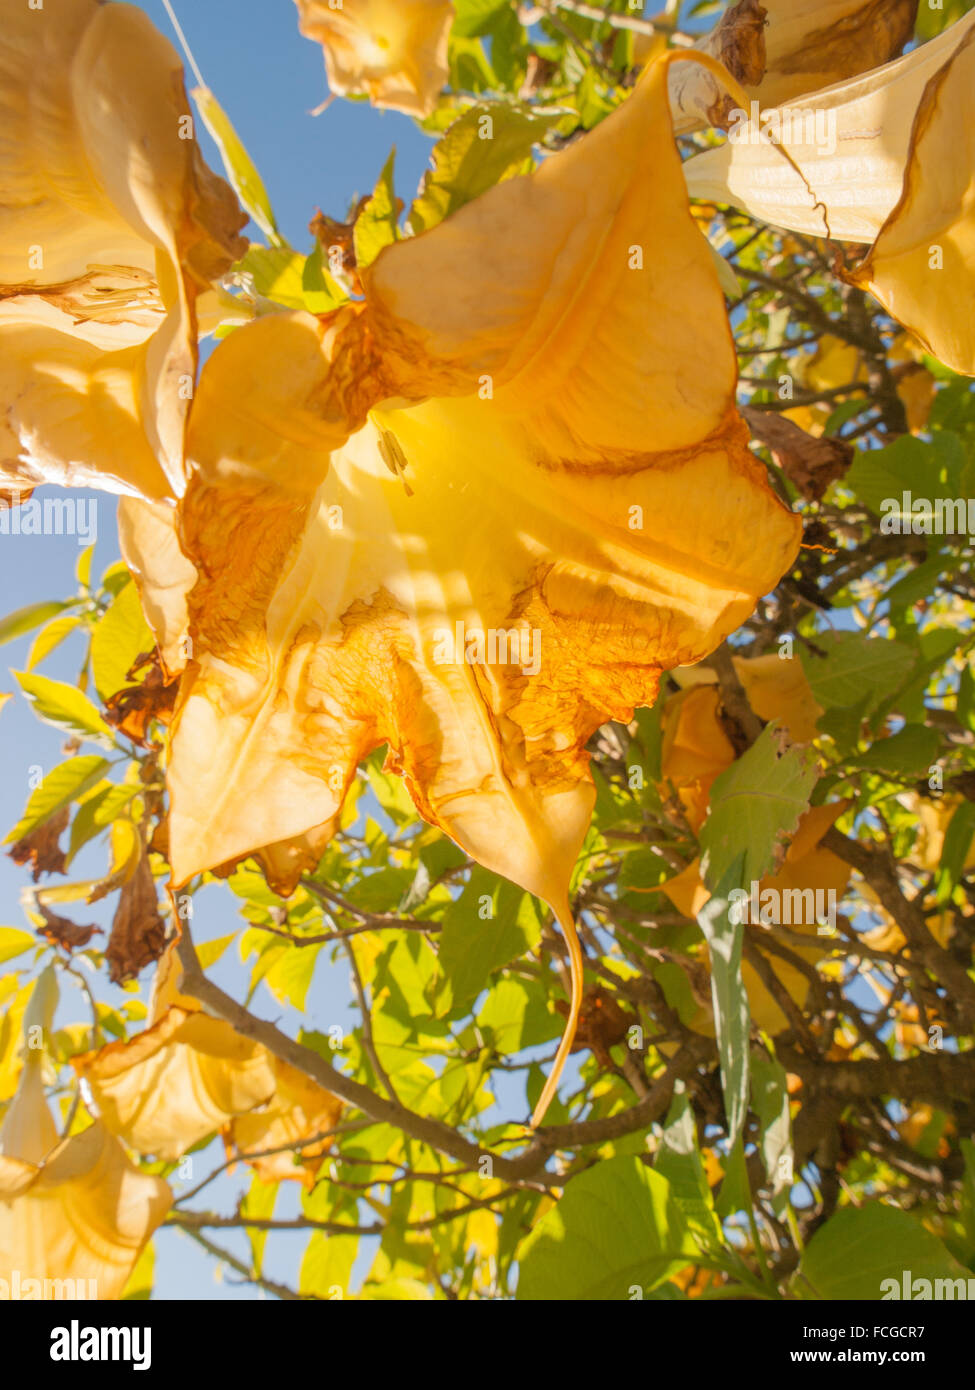 Yellow and brown decaying angels trumpet flower hanging from tree yellow and brown decaying angels trumpet flower hanging from tree against blue sky with sunlight coming through petals mightylinksfo